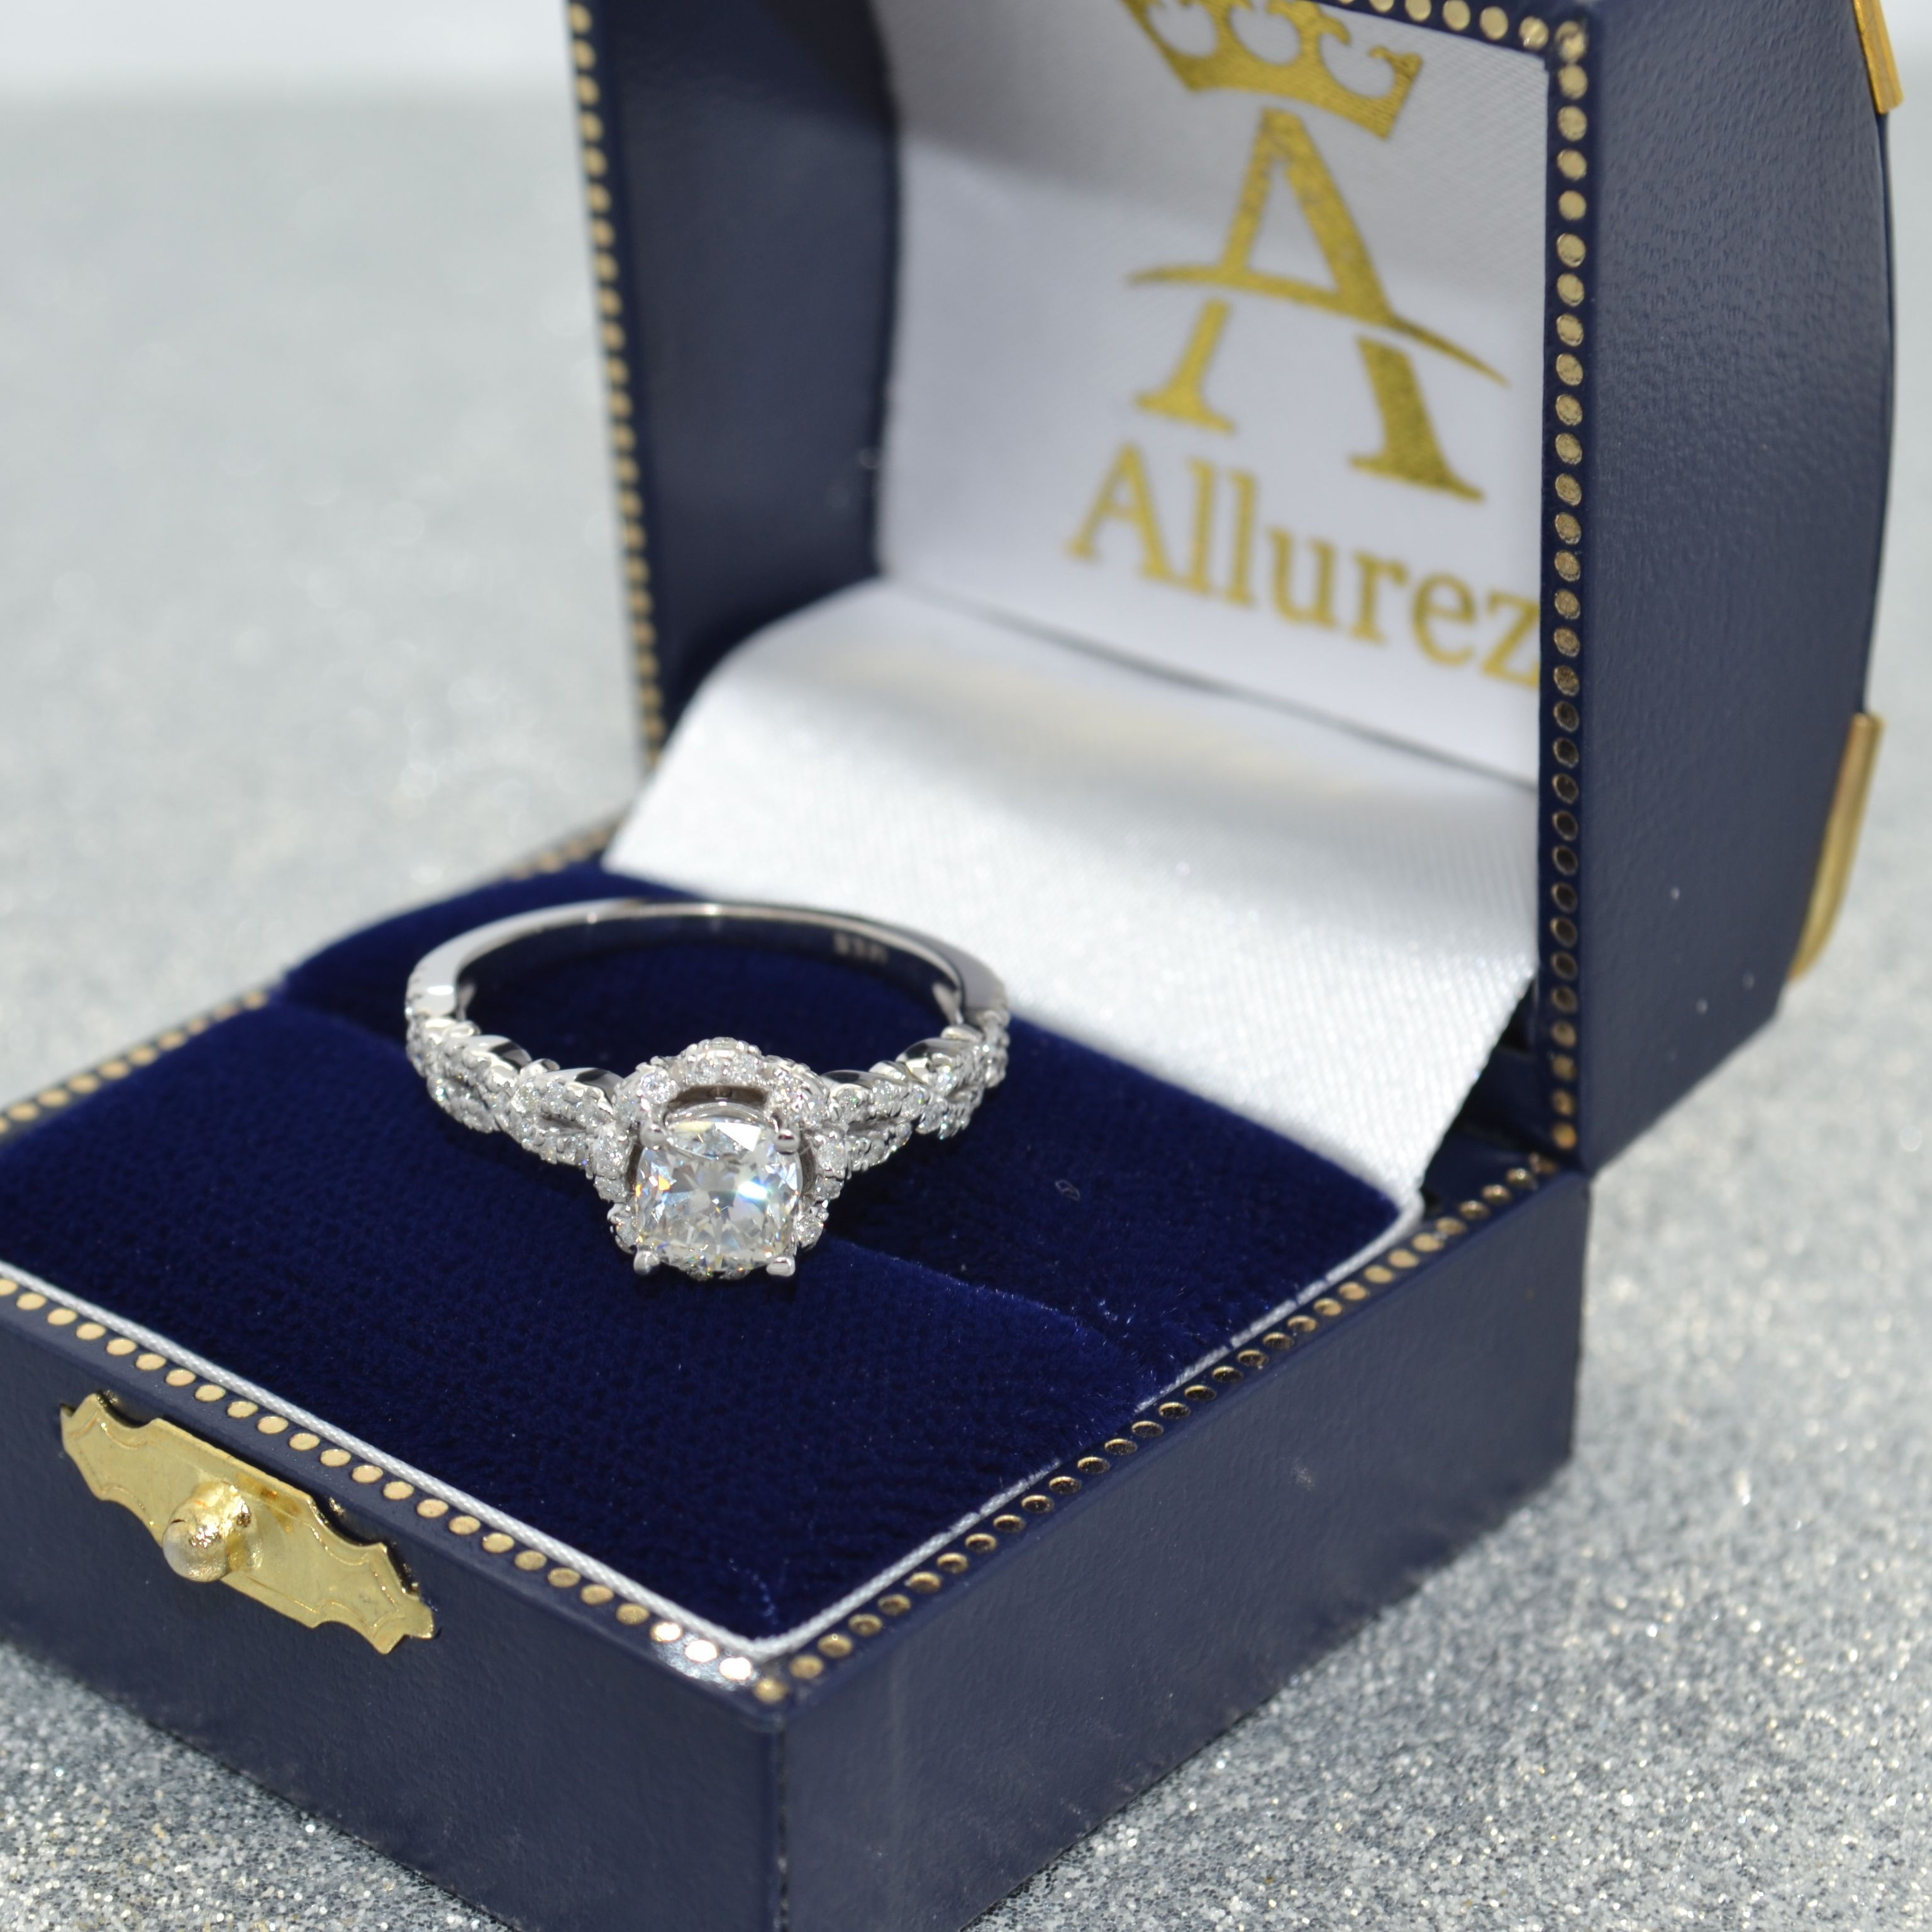 4b6a38bdf25 Twisted Halo Diamond Flower Engagement Ring Setting 14k W. Gold 0.63 ...